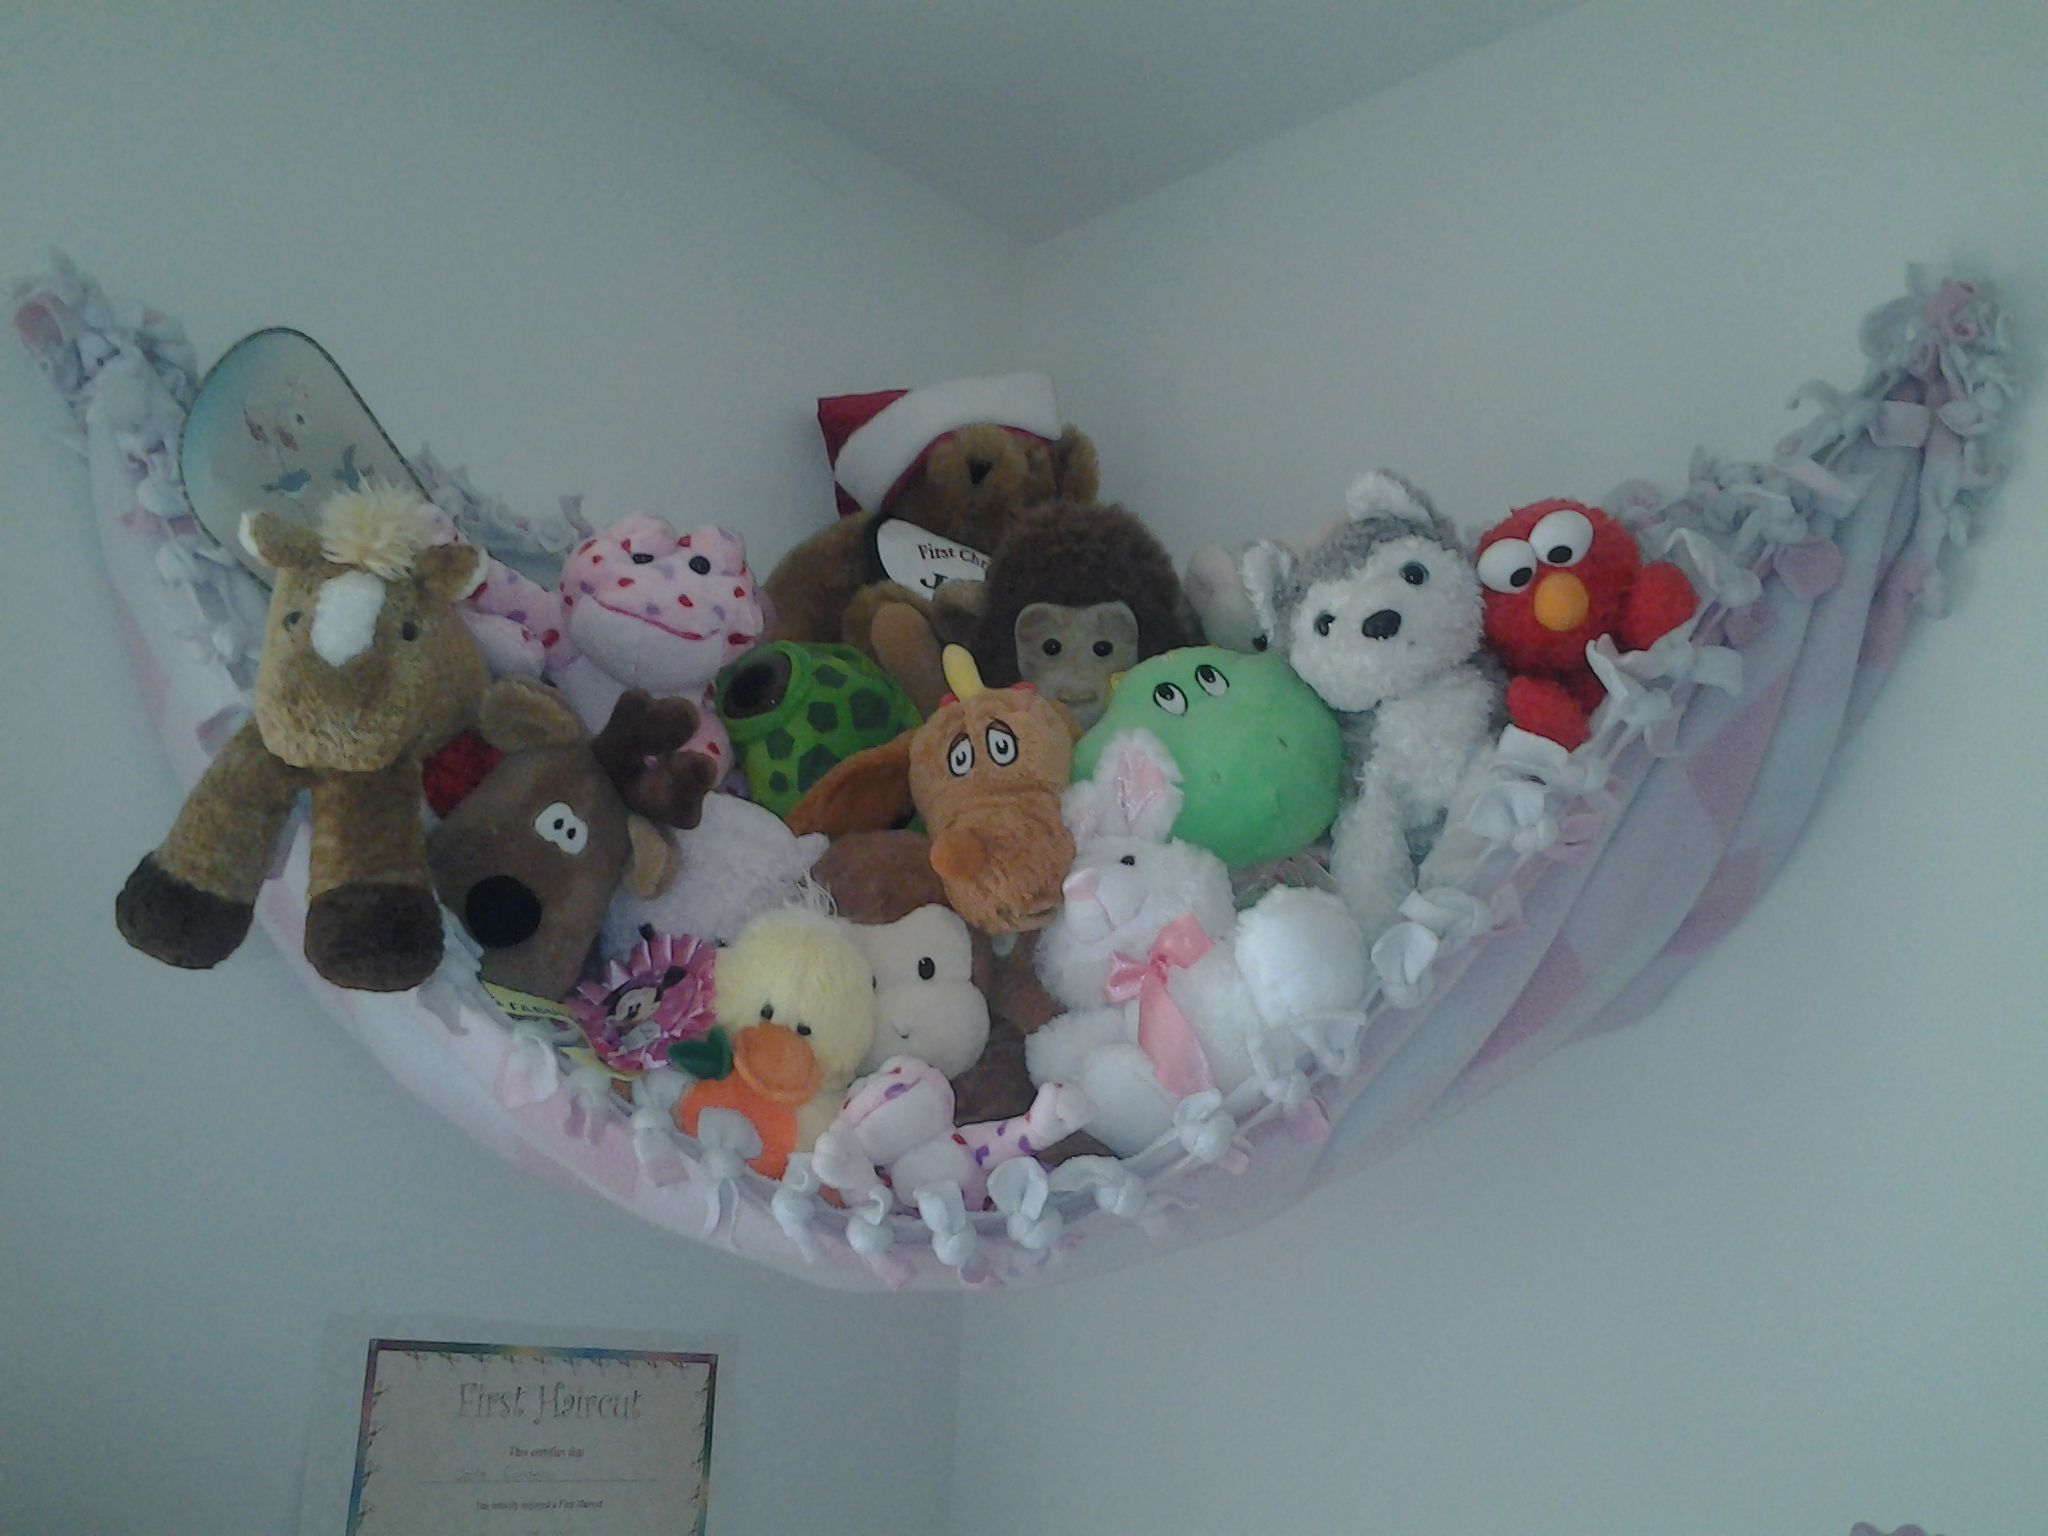 Quick way to store and display stuffed animals. Stuffed